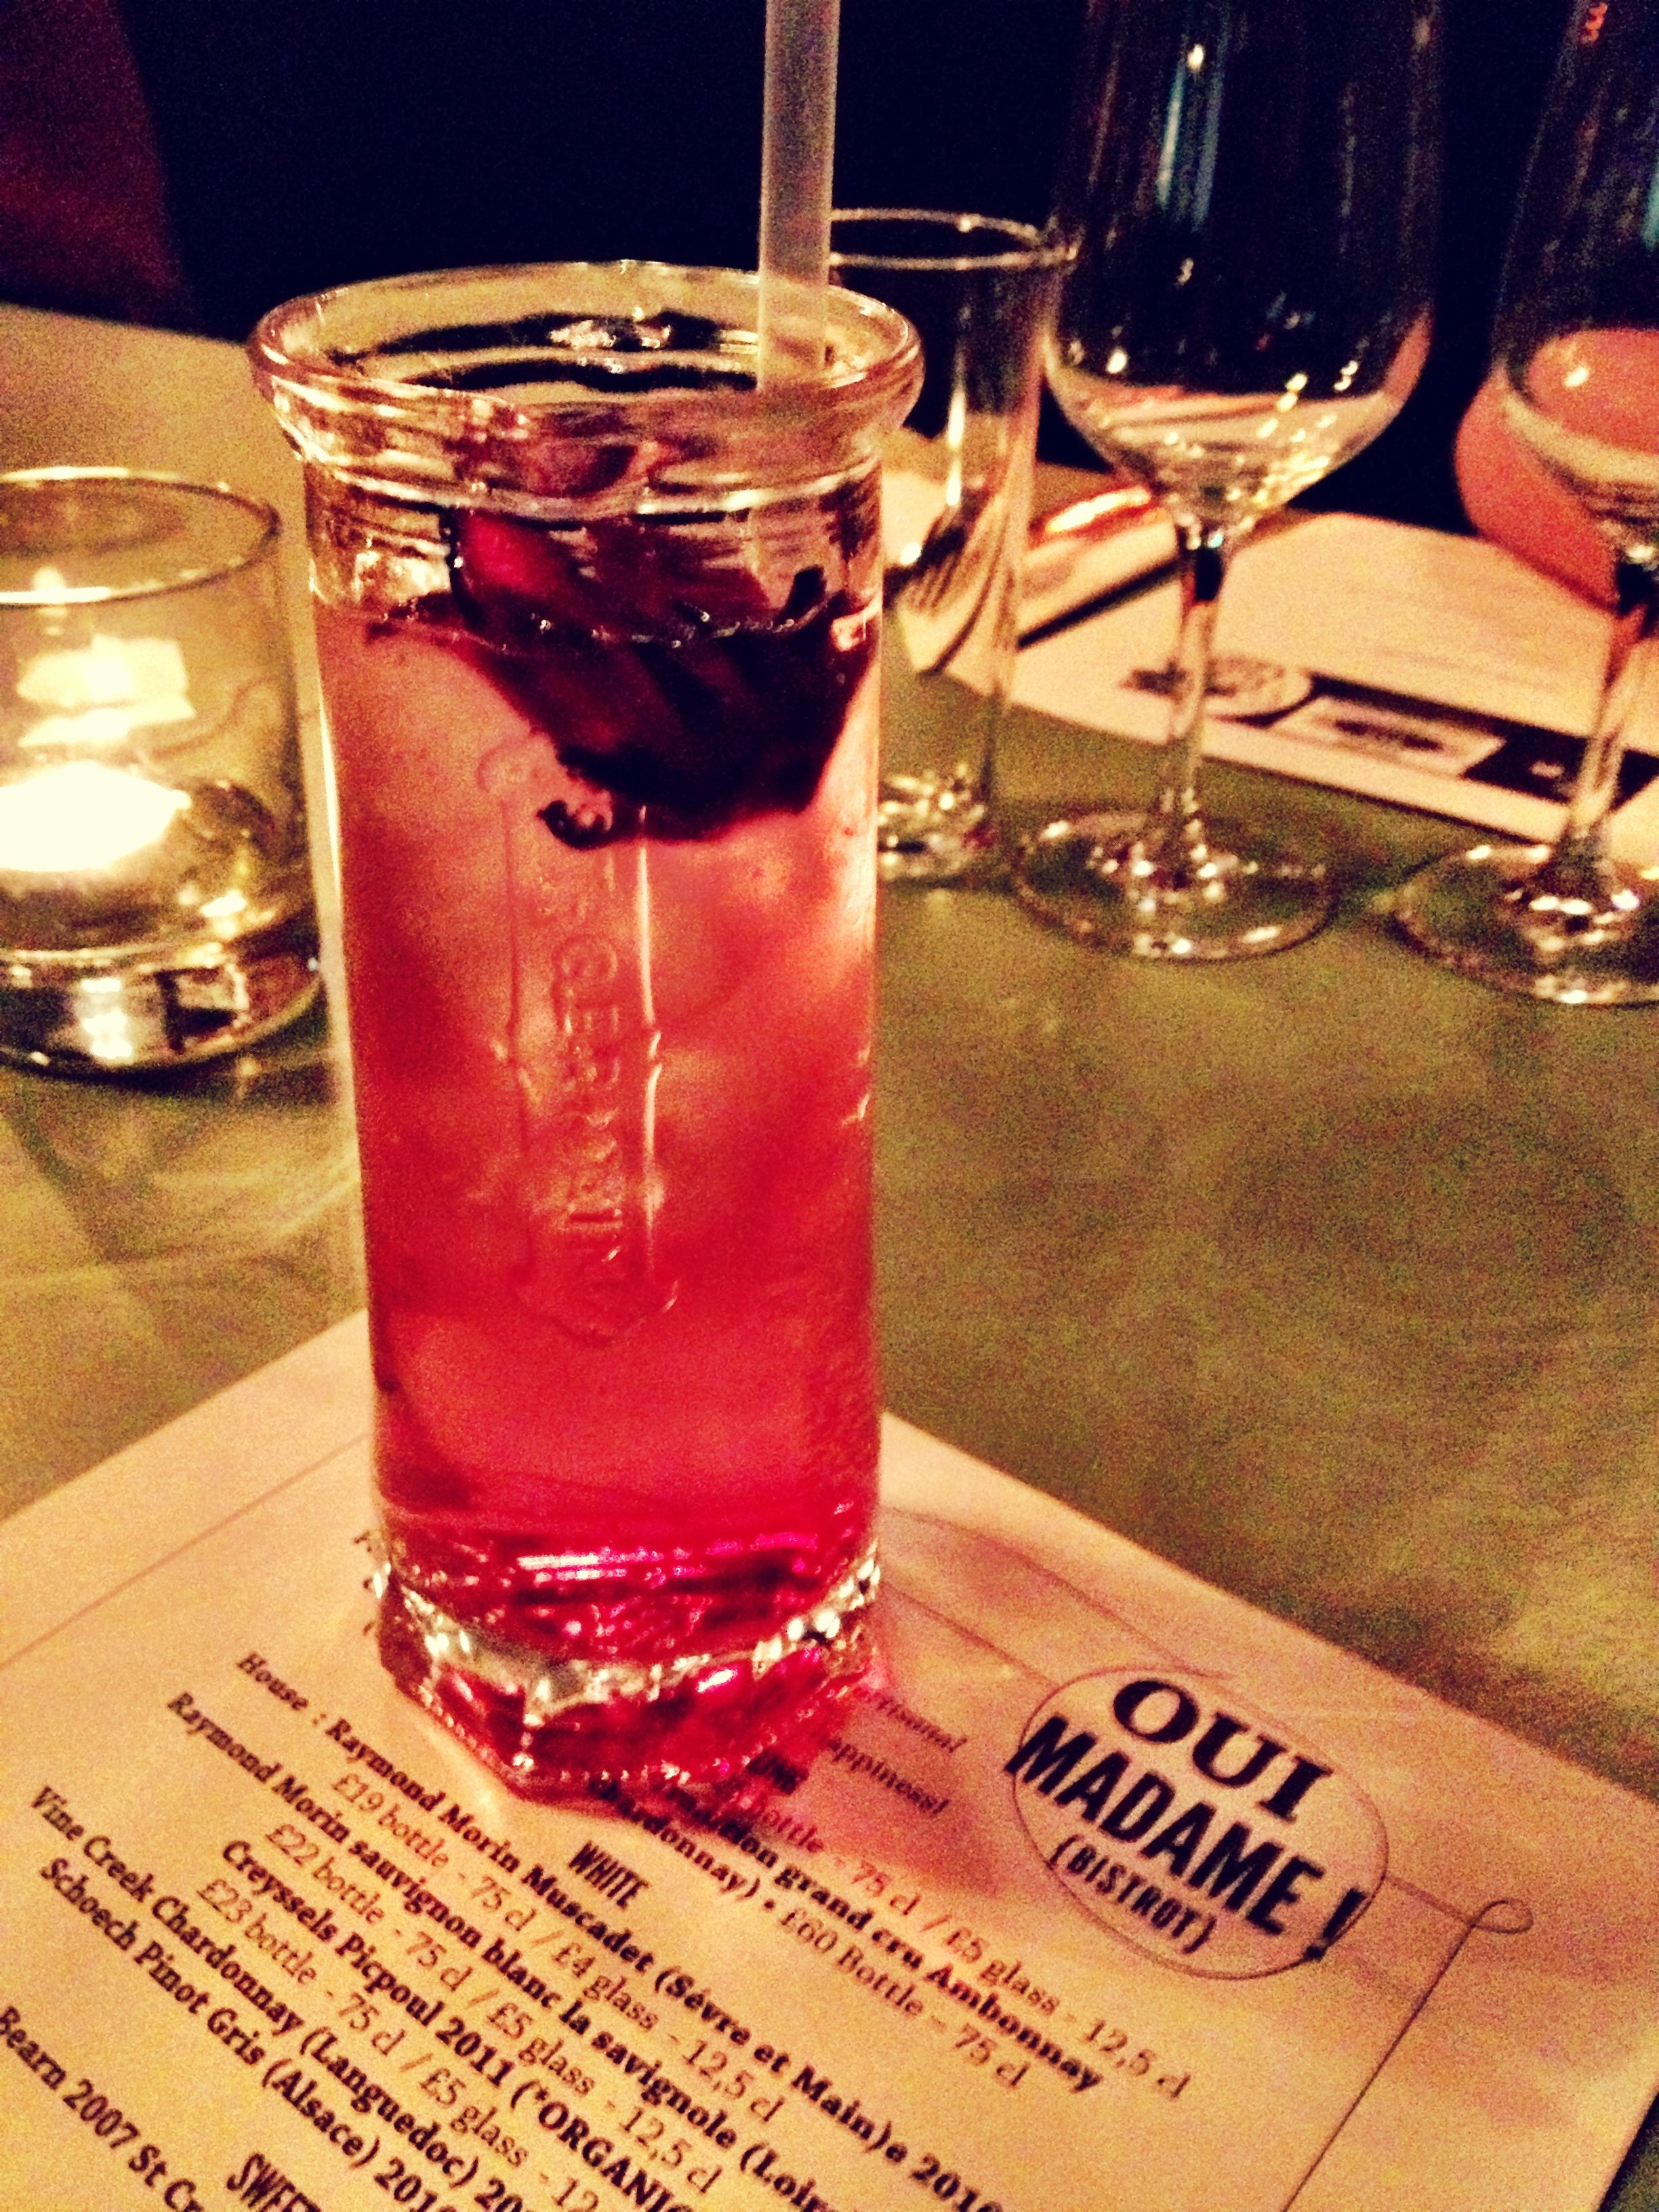 The St Germain Cocktail Served With Hibiscus Flower 1 12 Part St